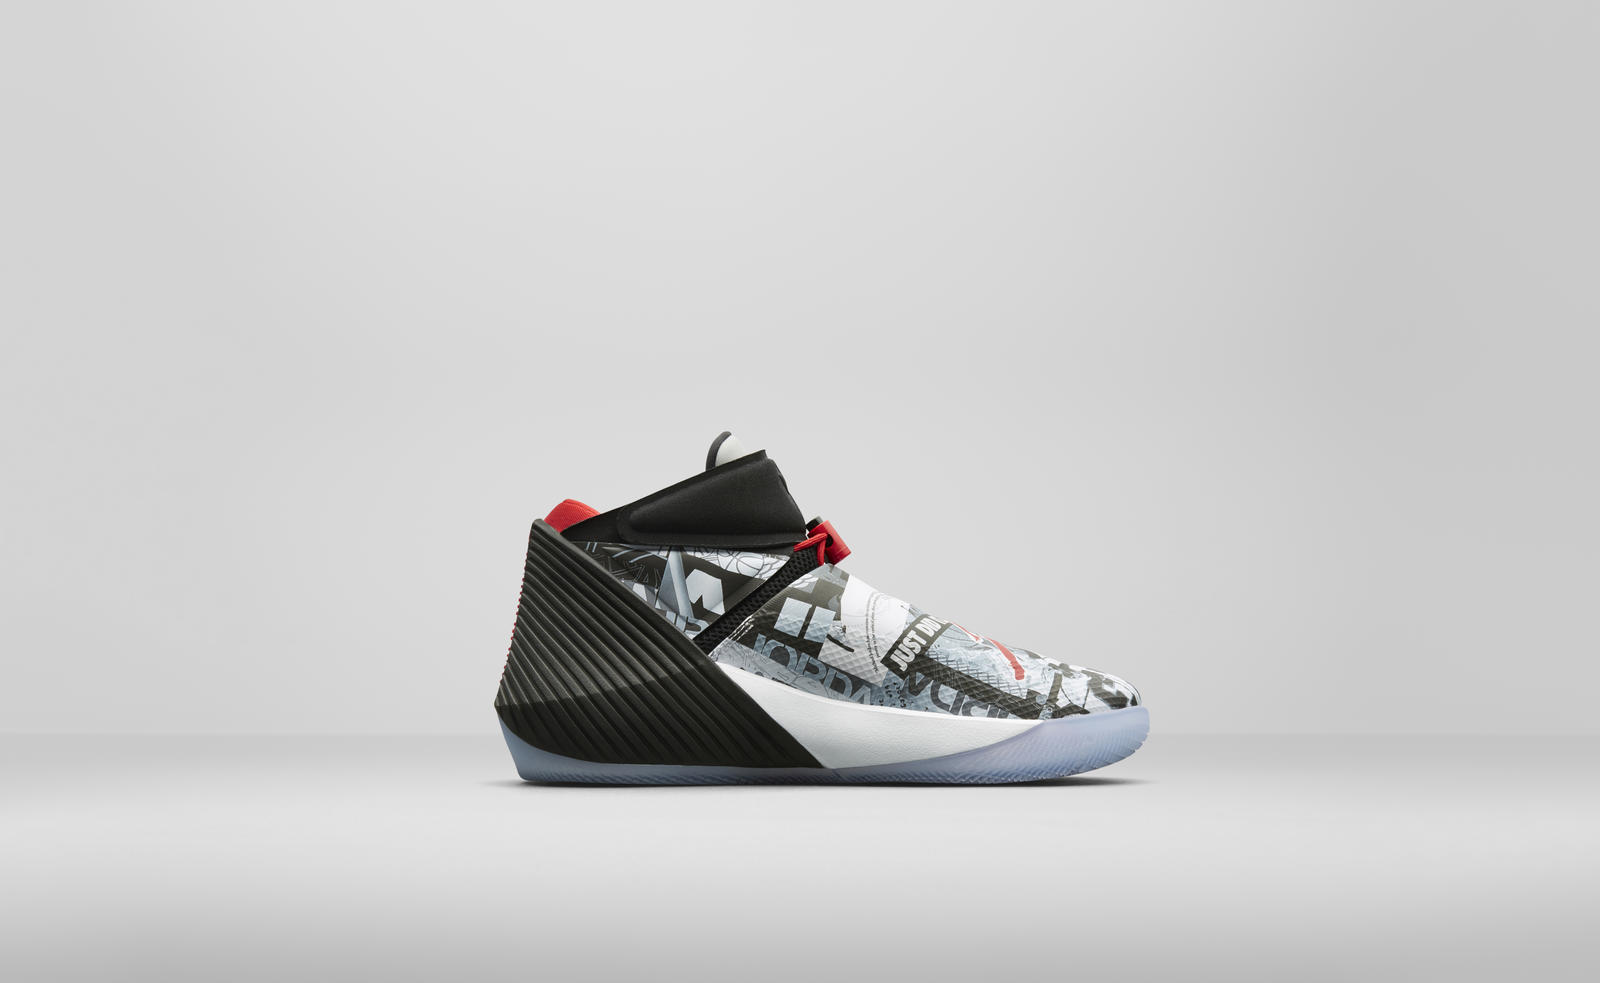 Russell Westbrook S First Signature Shoe The Jordan Why Not Zero